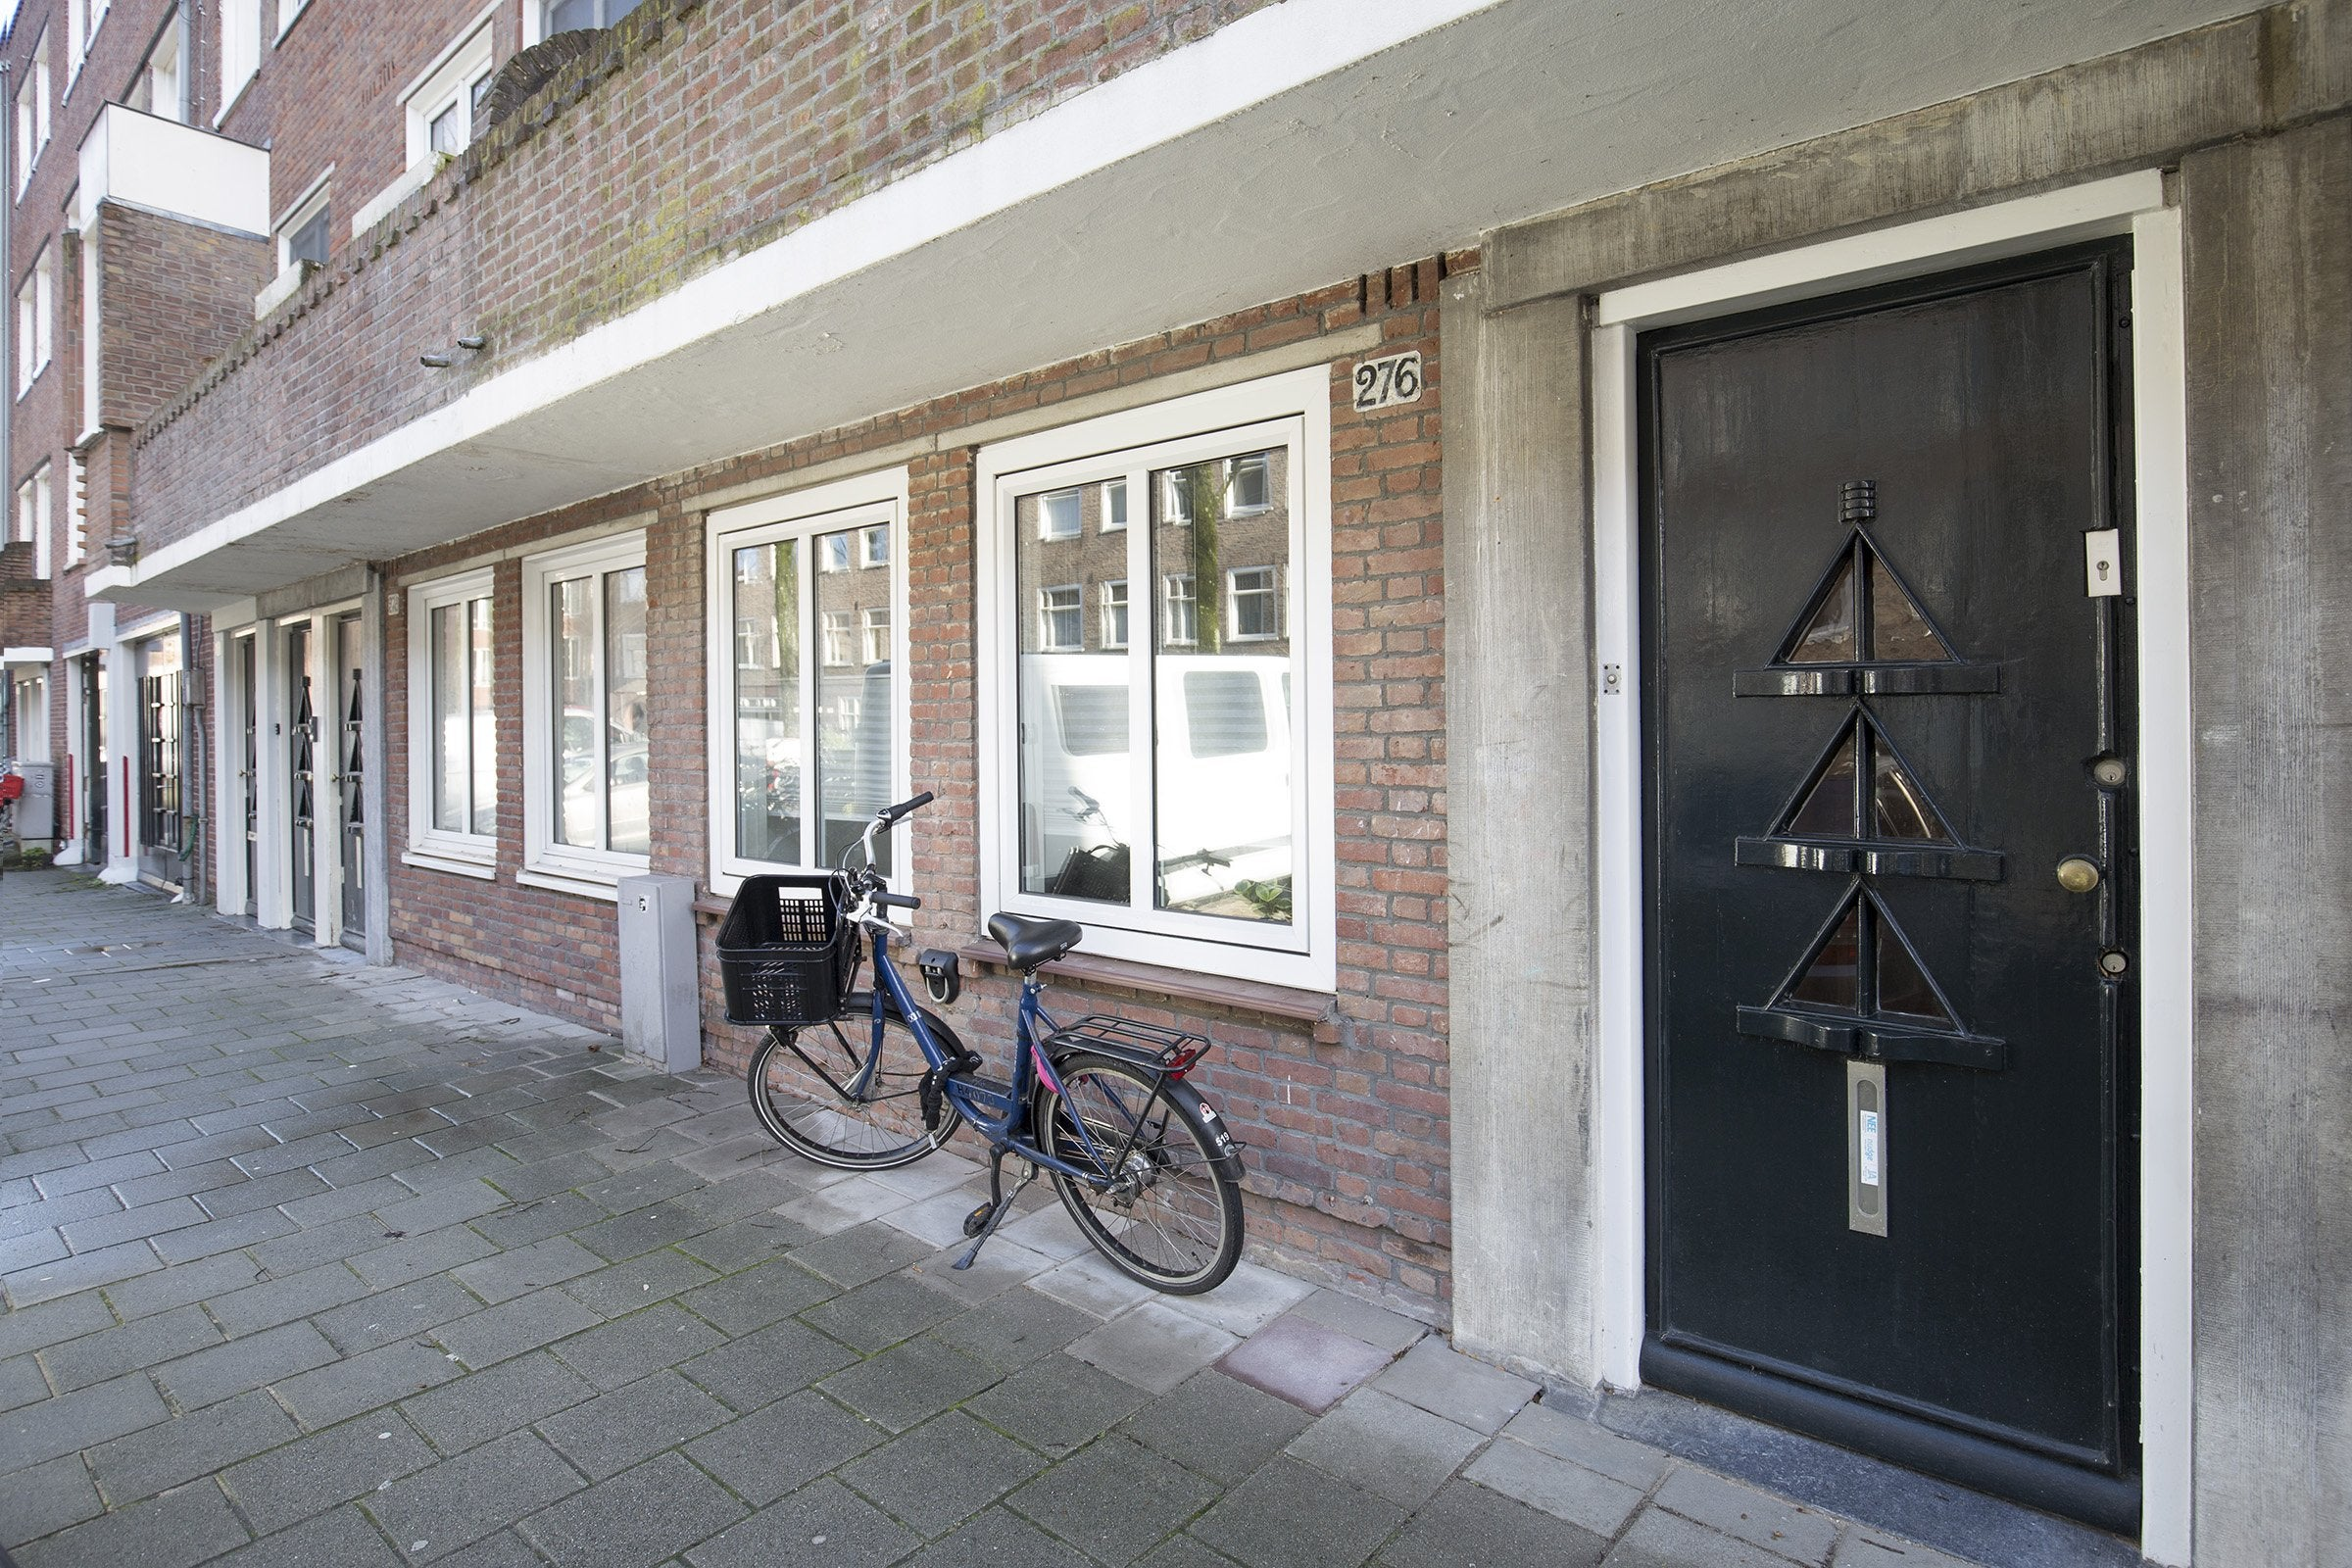 Marco Polostraat